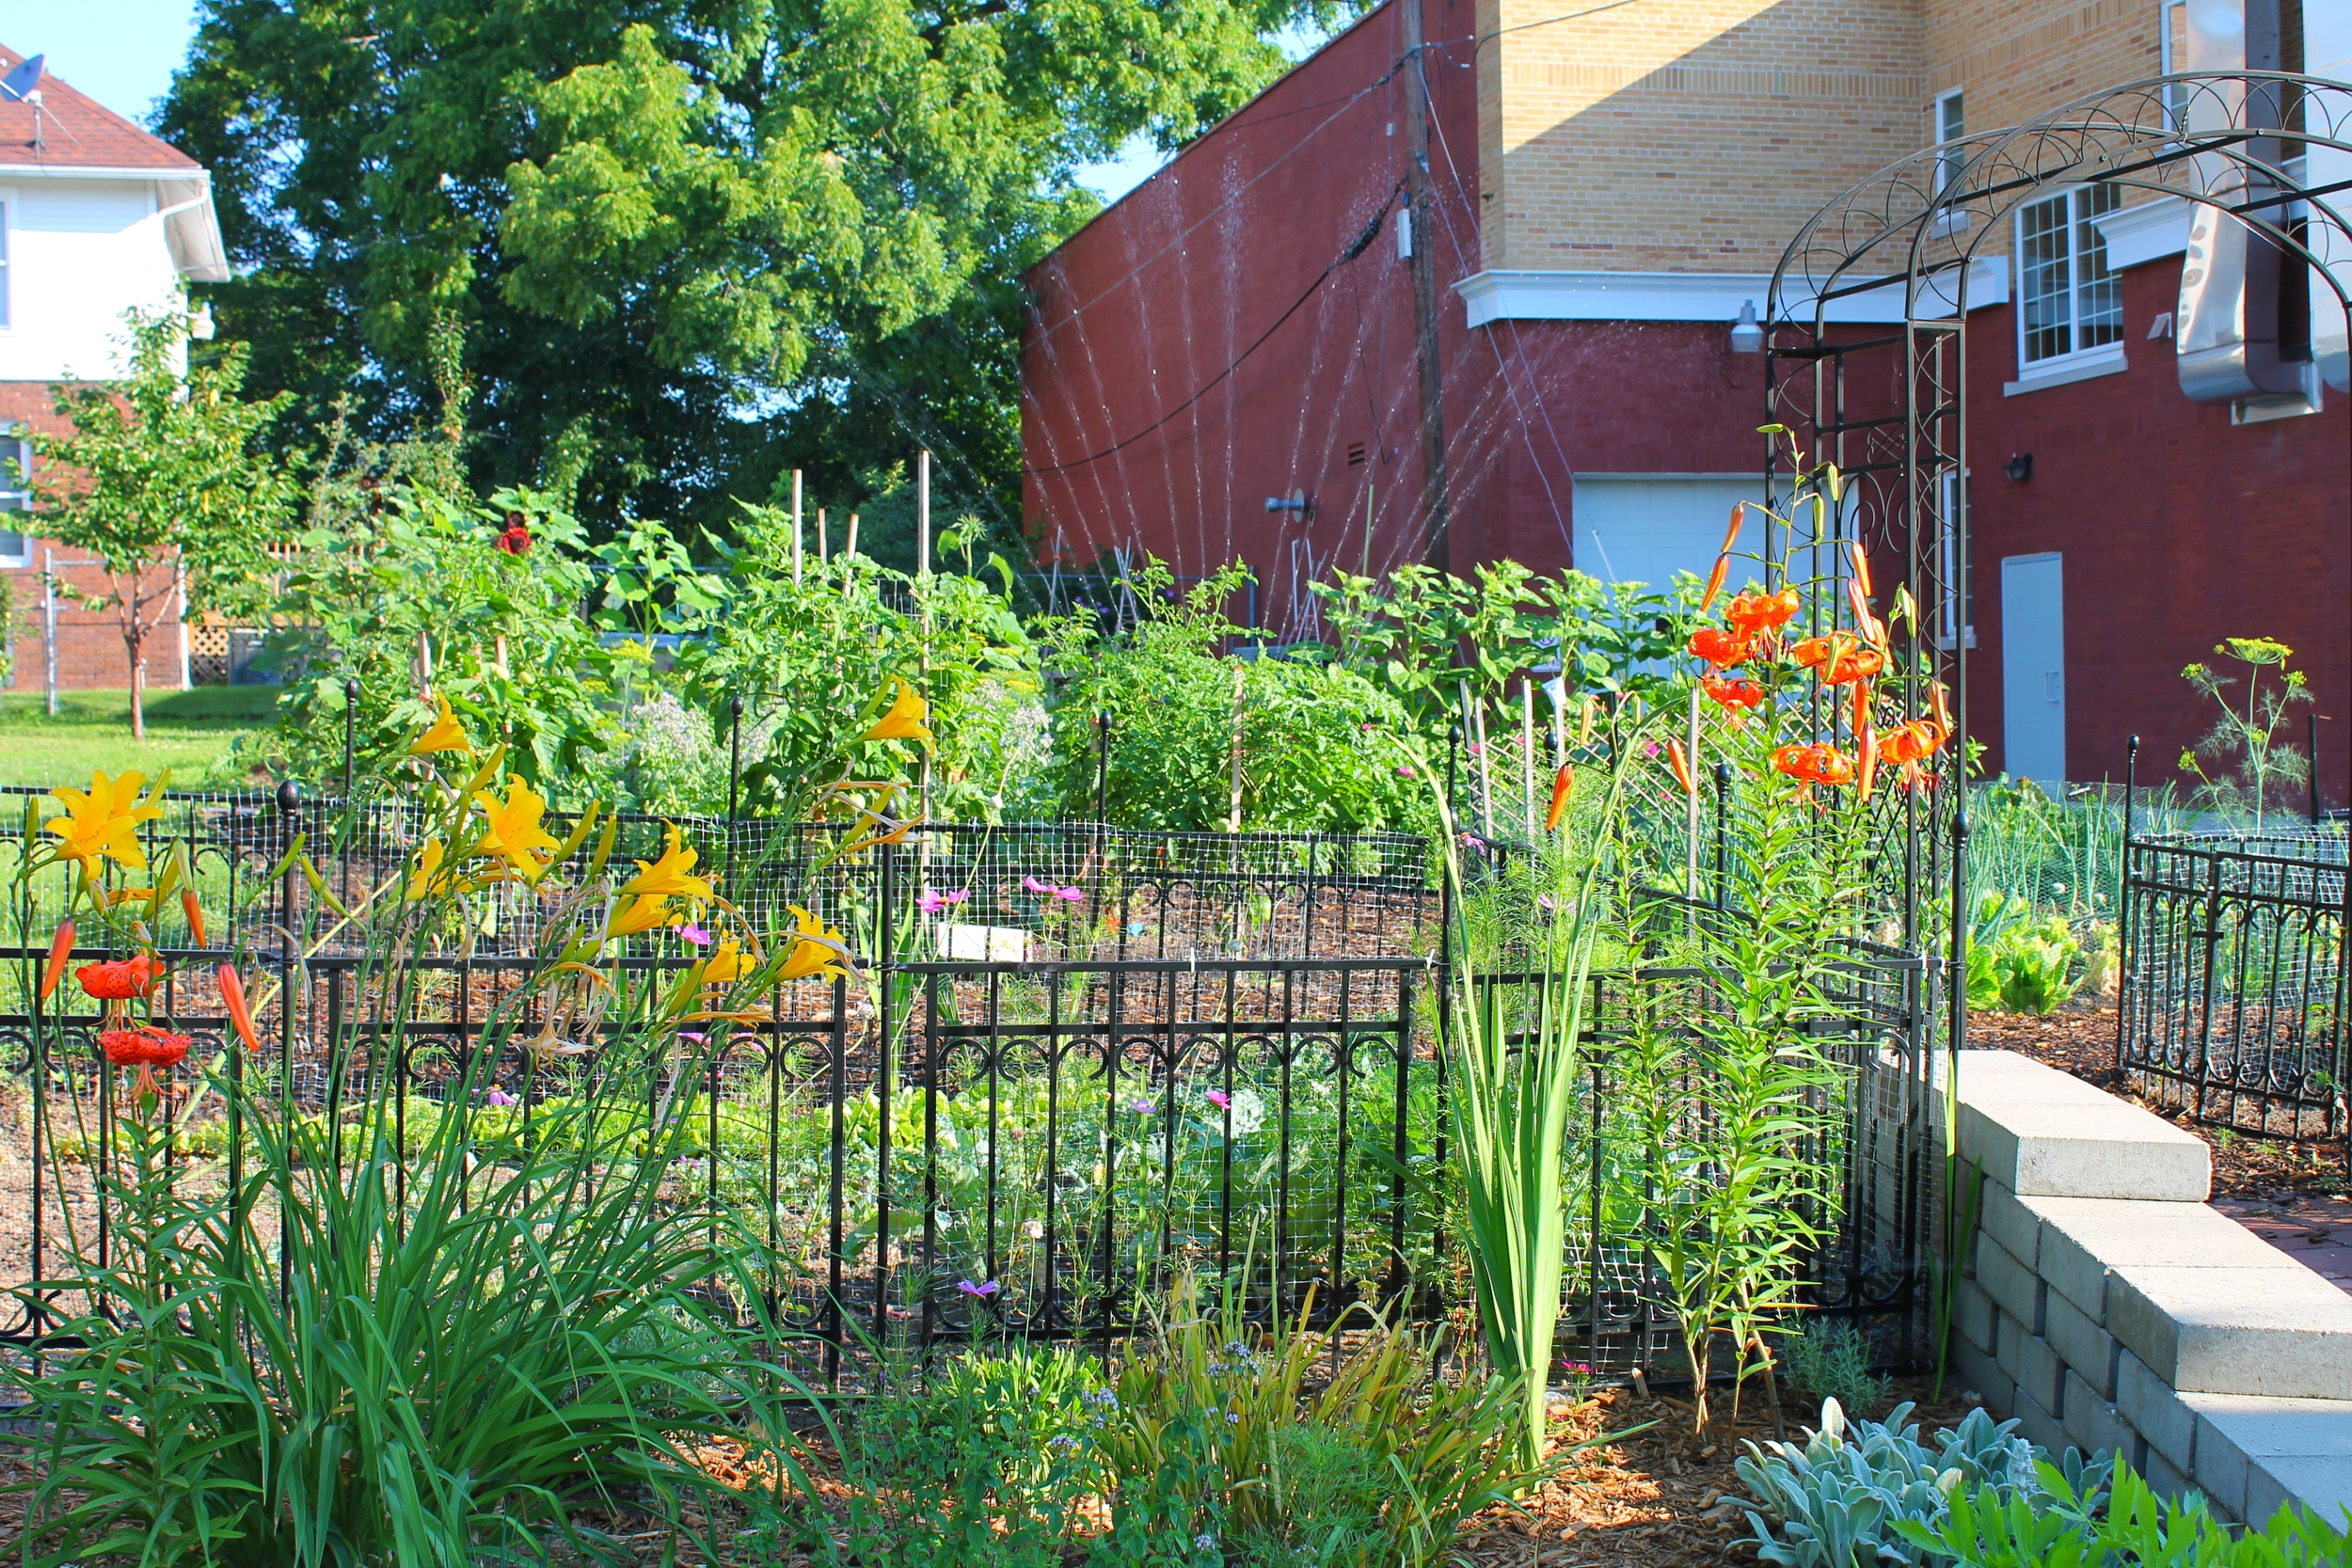 A flower and vegetable garden maintained by residents adds beauty to the neighborhood.